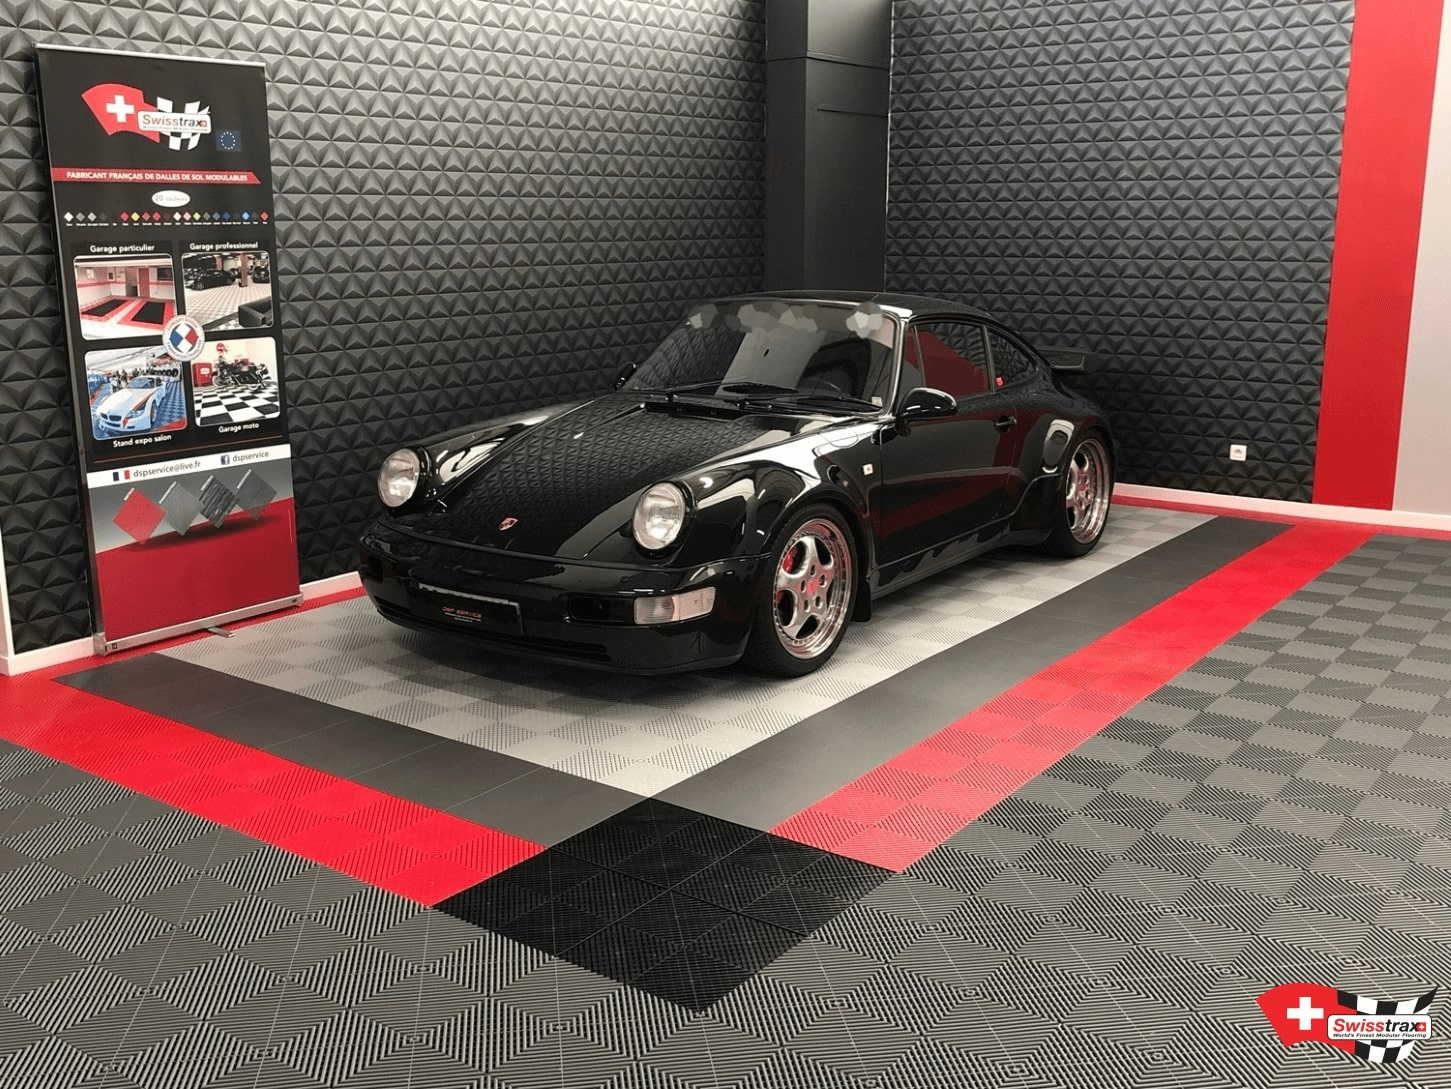 showroom floor